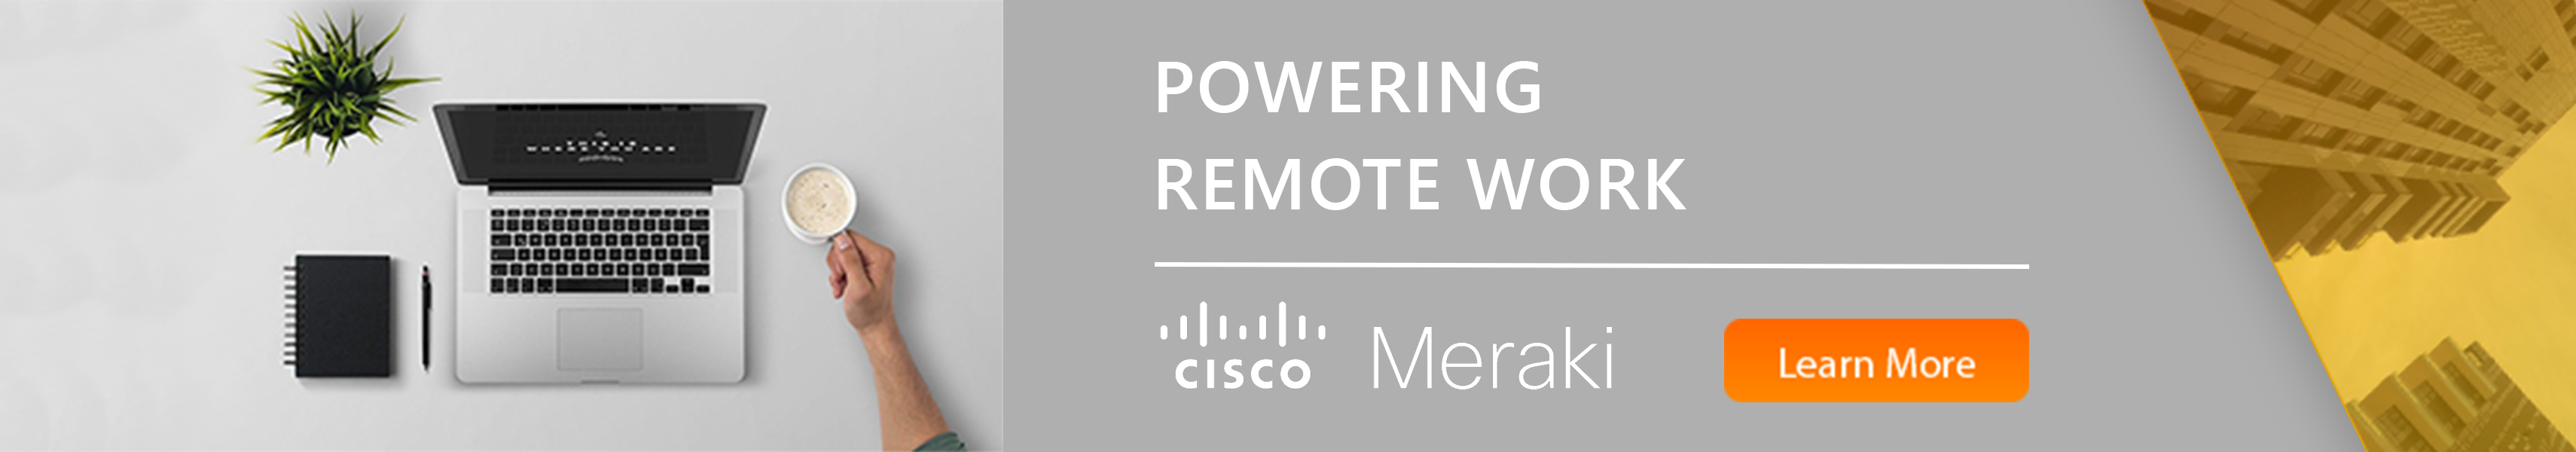 Cisco Meraki Go - Faster Networks Start with Dependable Hardware